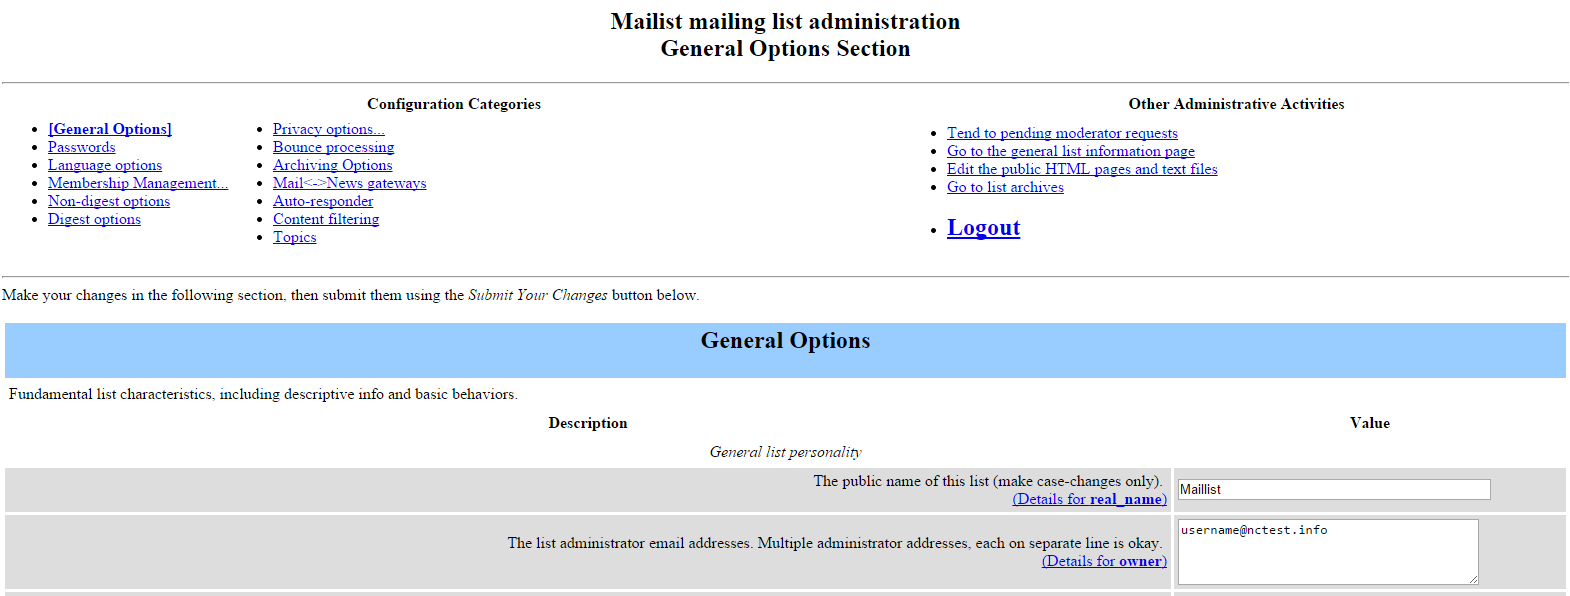 how to create and manage mailing lists in cpanel cpanel questions delegation assigns administrative rights to available users use arrows to add exclude selected users from the list of administrators and click save